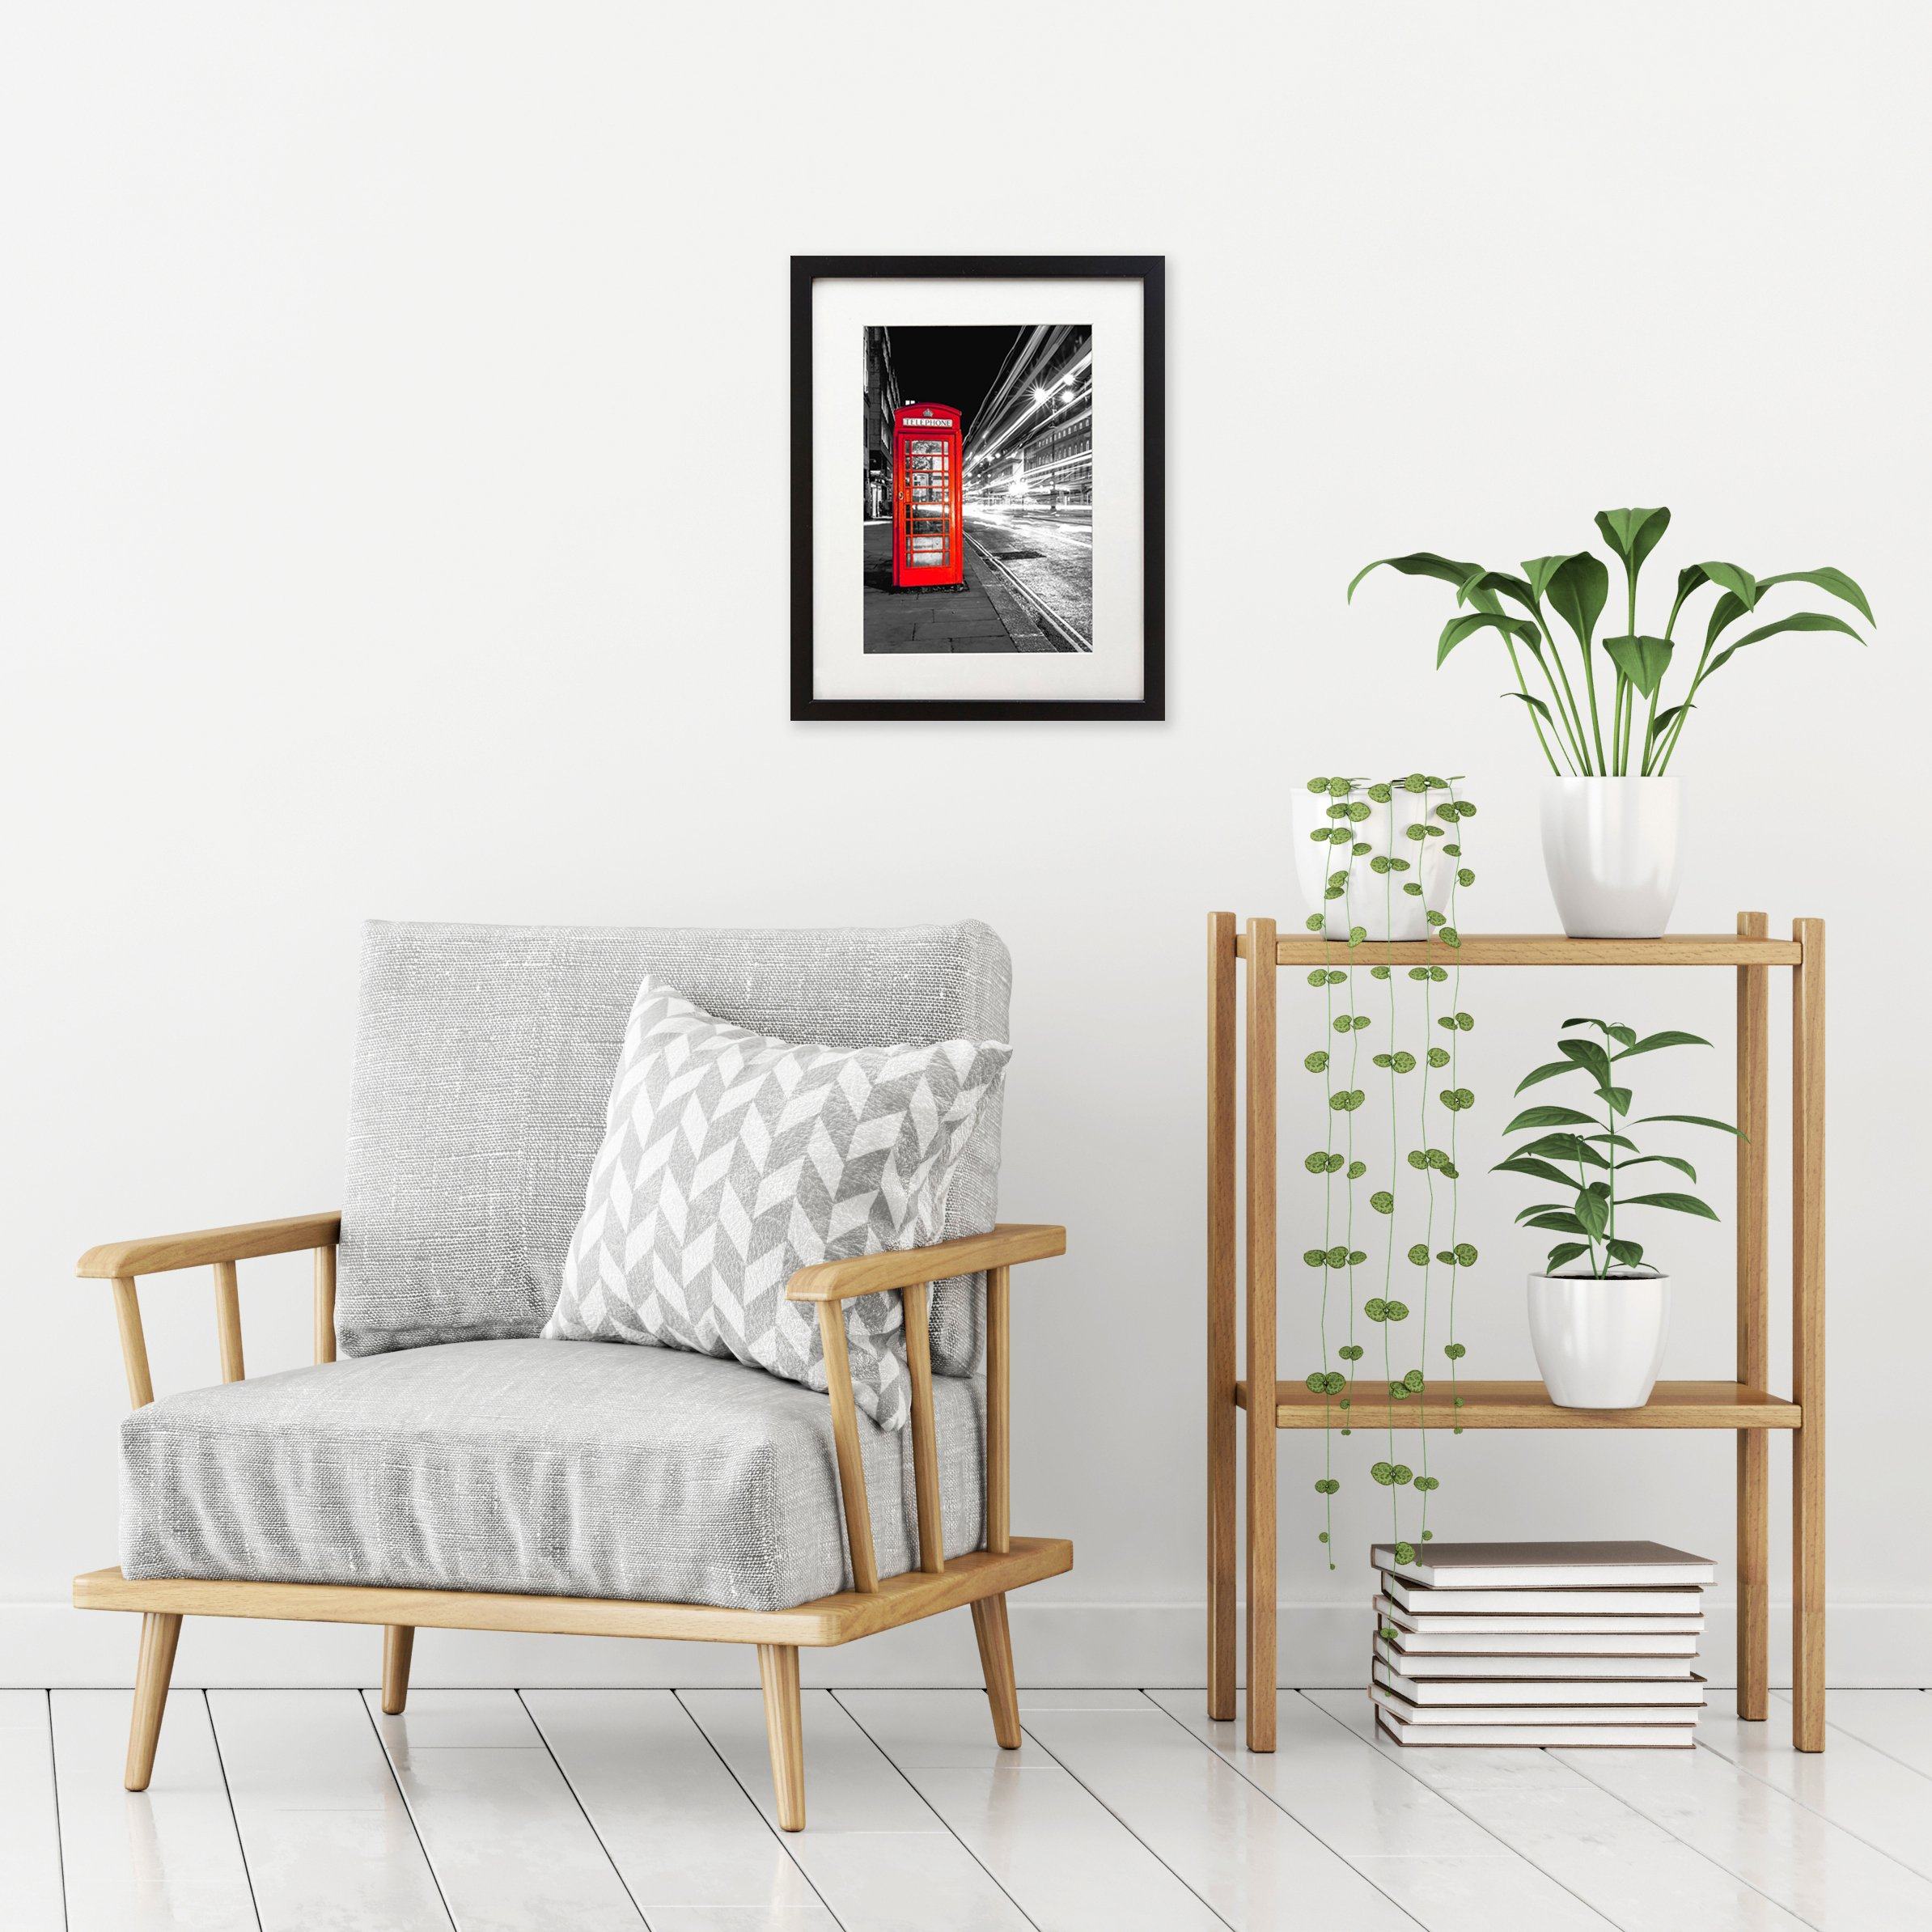 displaying pf to wide xalima pictures space photos frames display without ikea images mat frame mats dark pool t maximize picture brown or made of molding photo mounting with virserum wall black closet